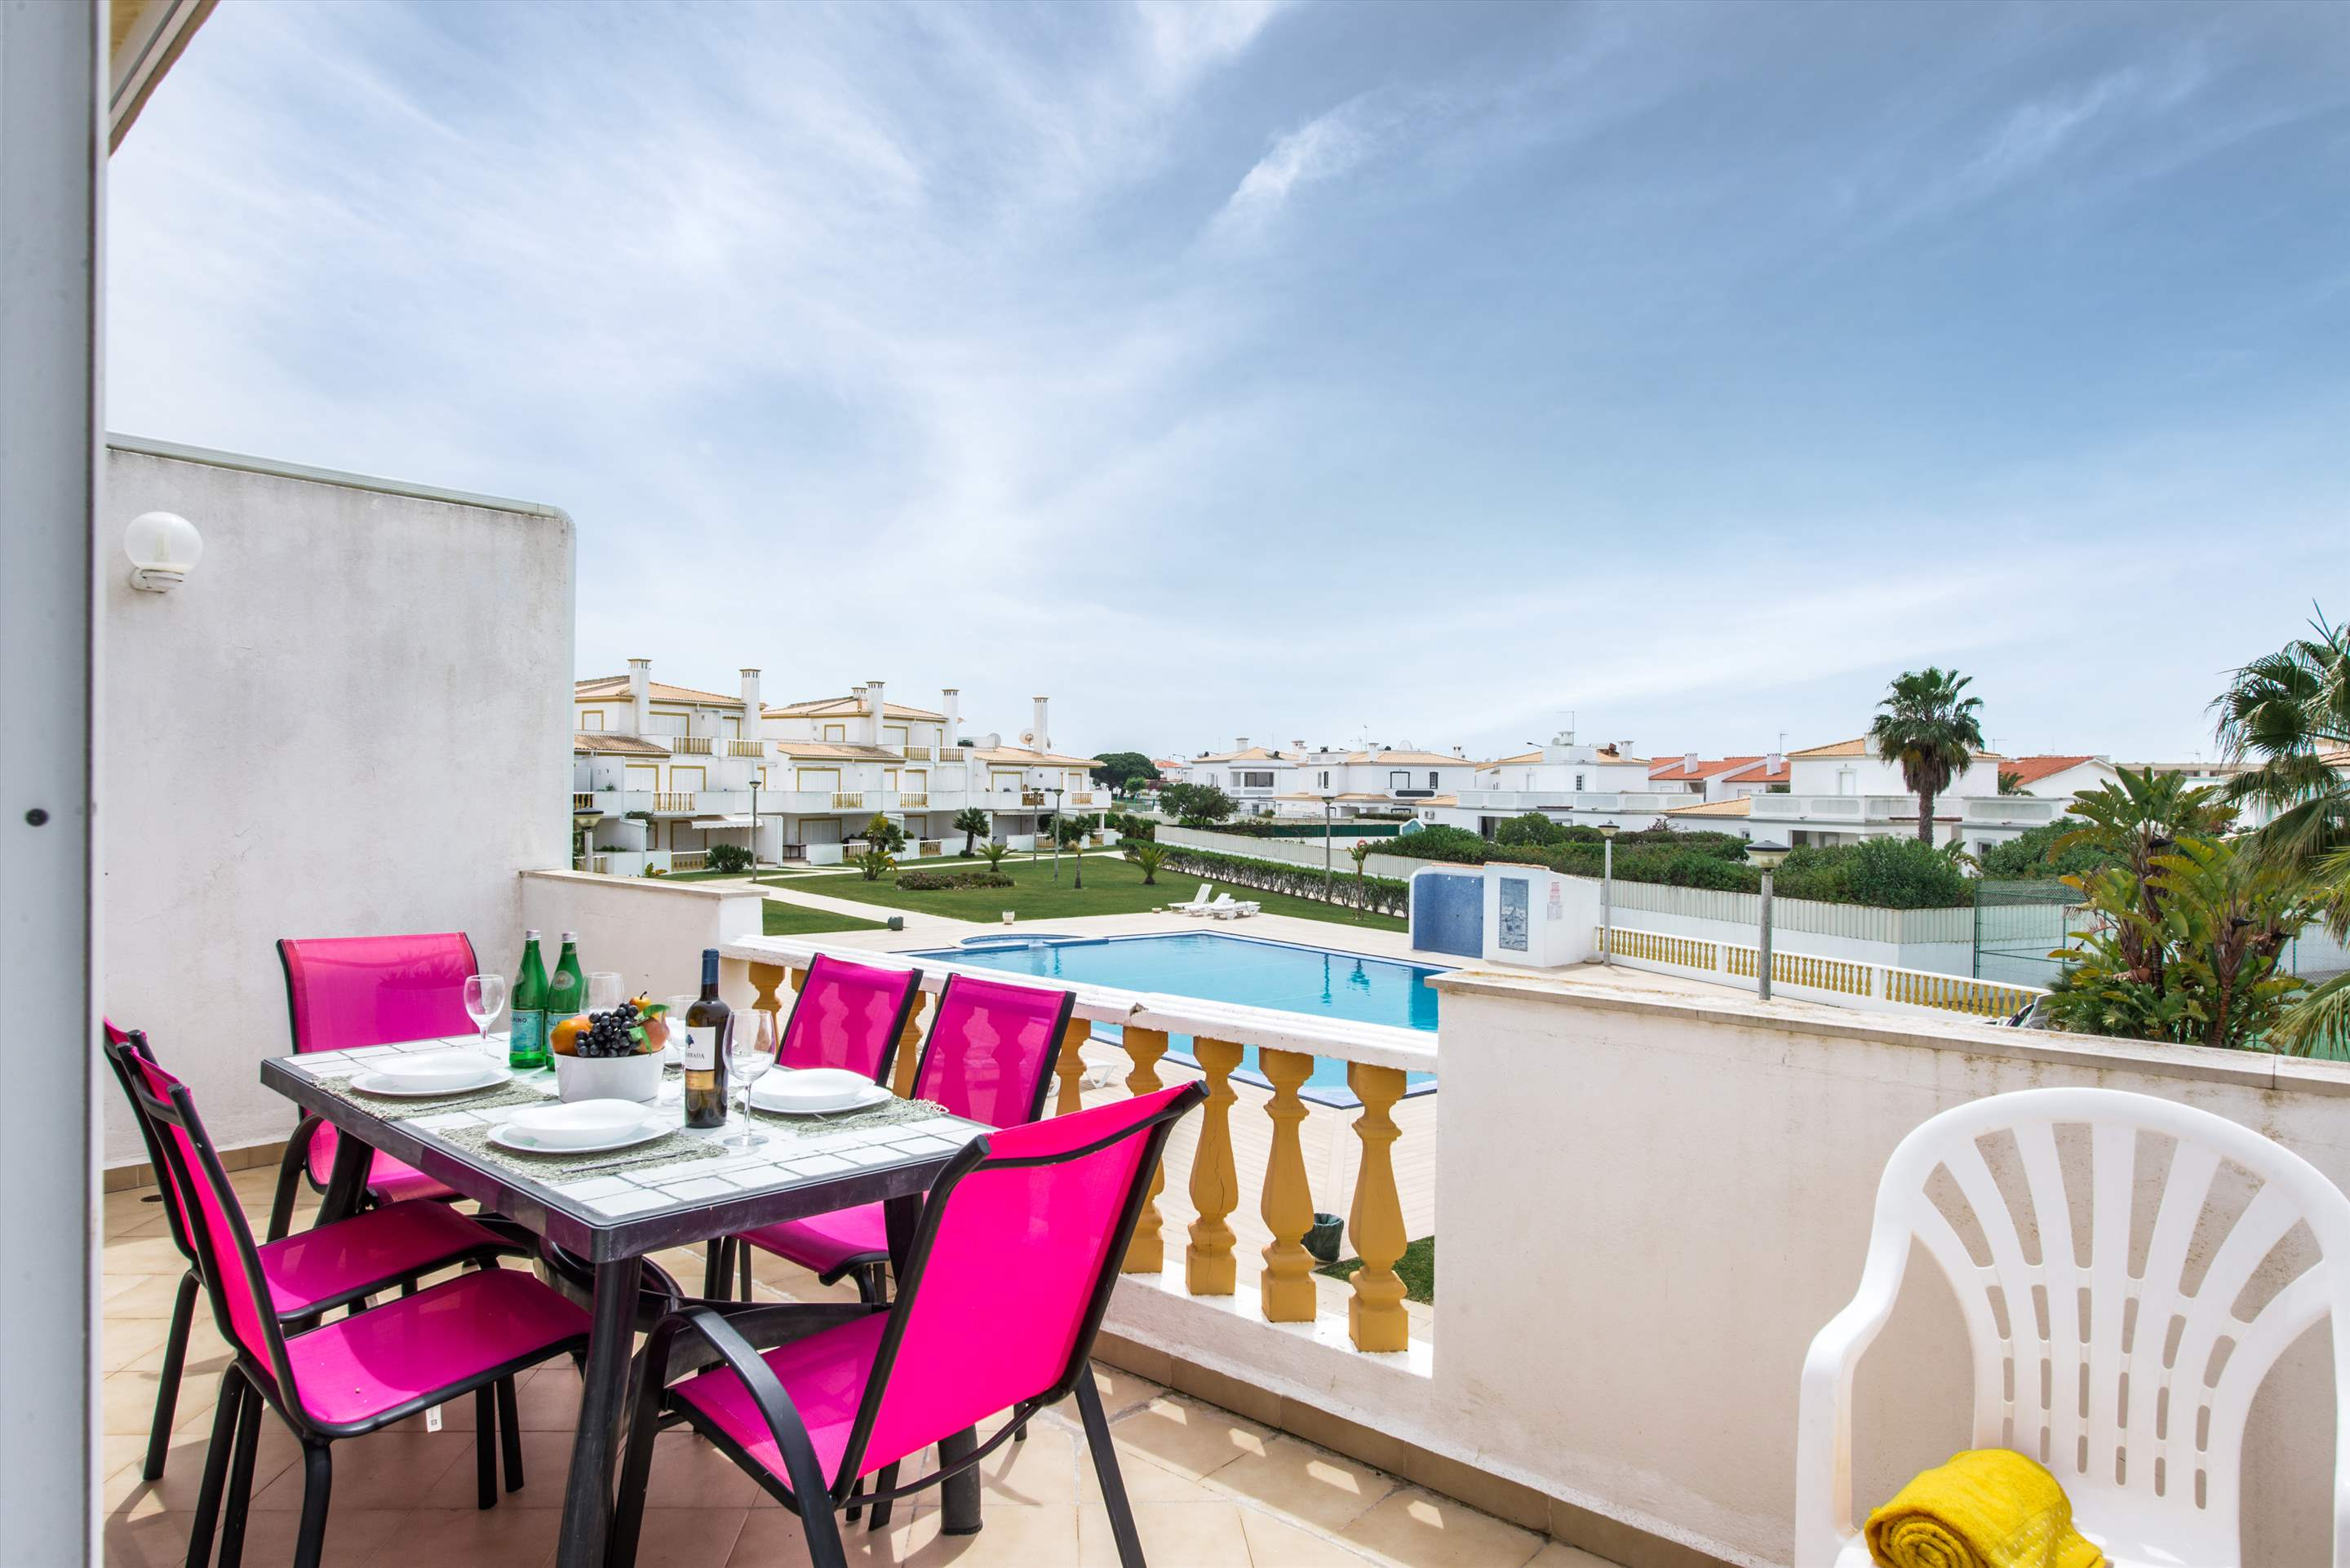 Apt O Monte, For Up to 4 Persons, 2 bedroom apartment in Gale, Vale da Parra and Guia, Algarve Photo #4